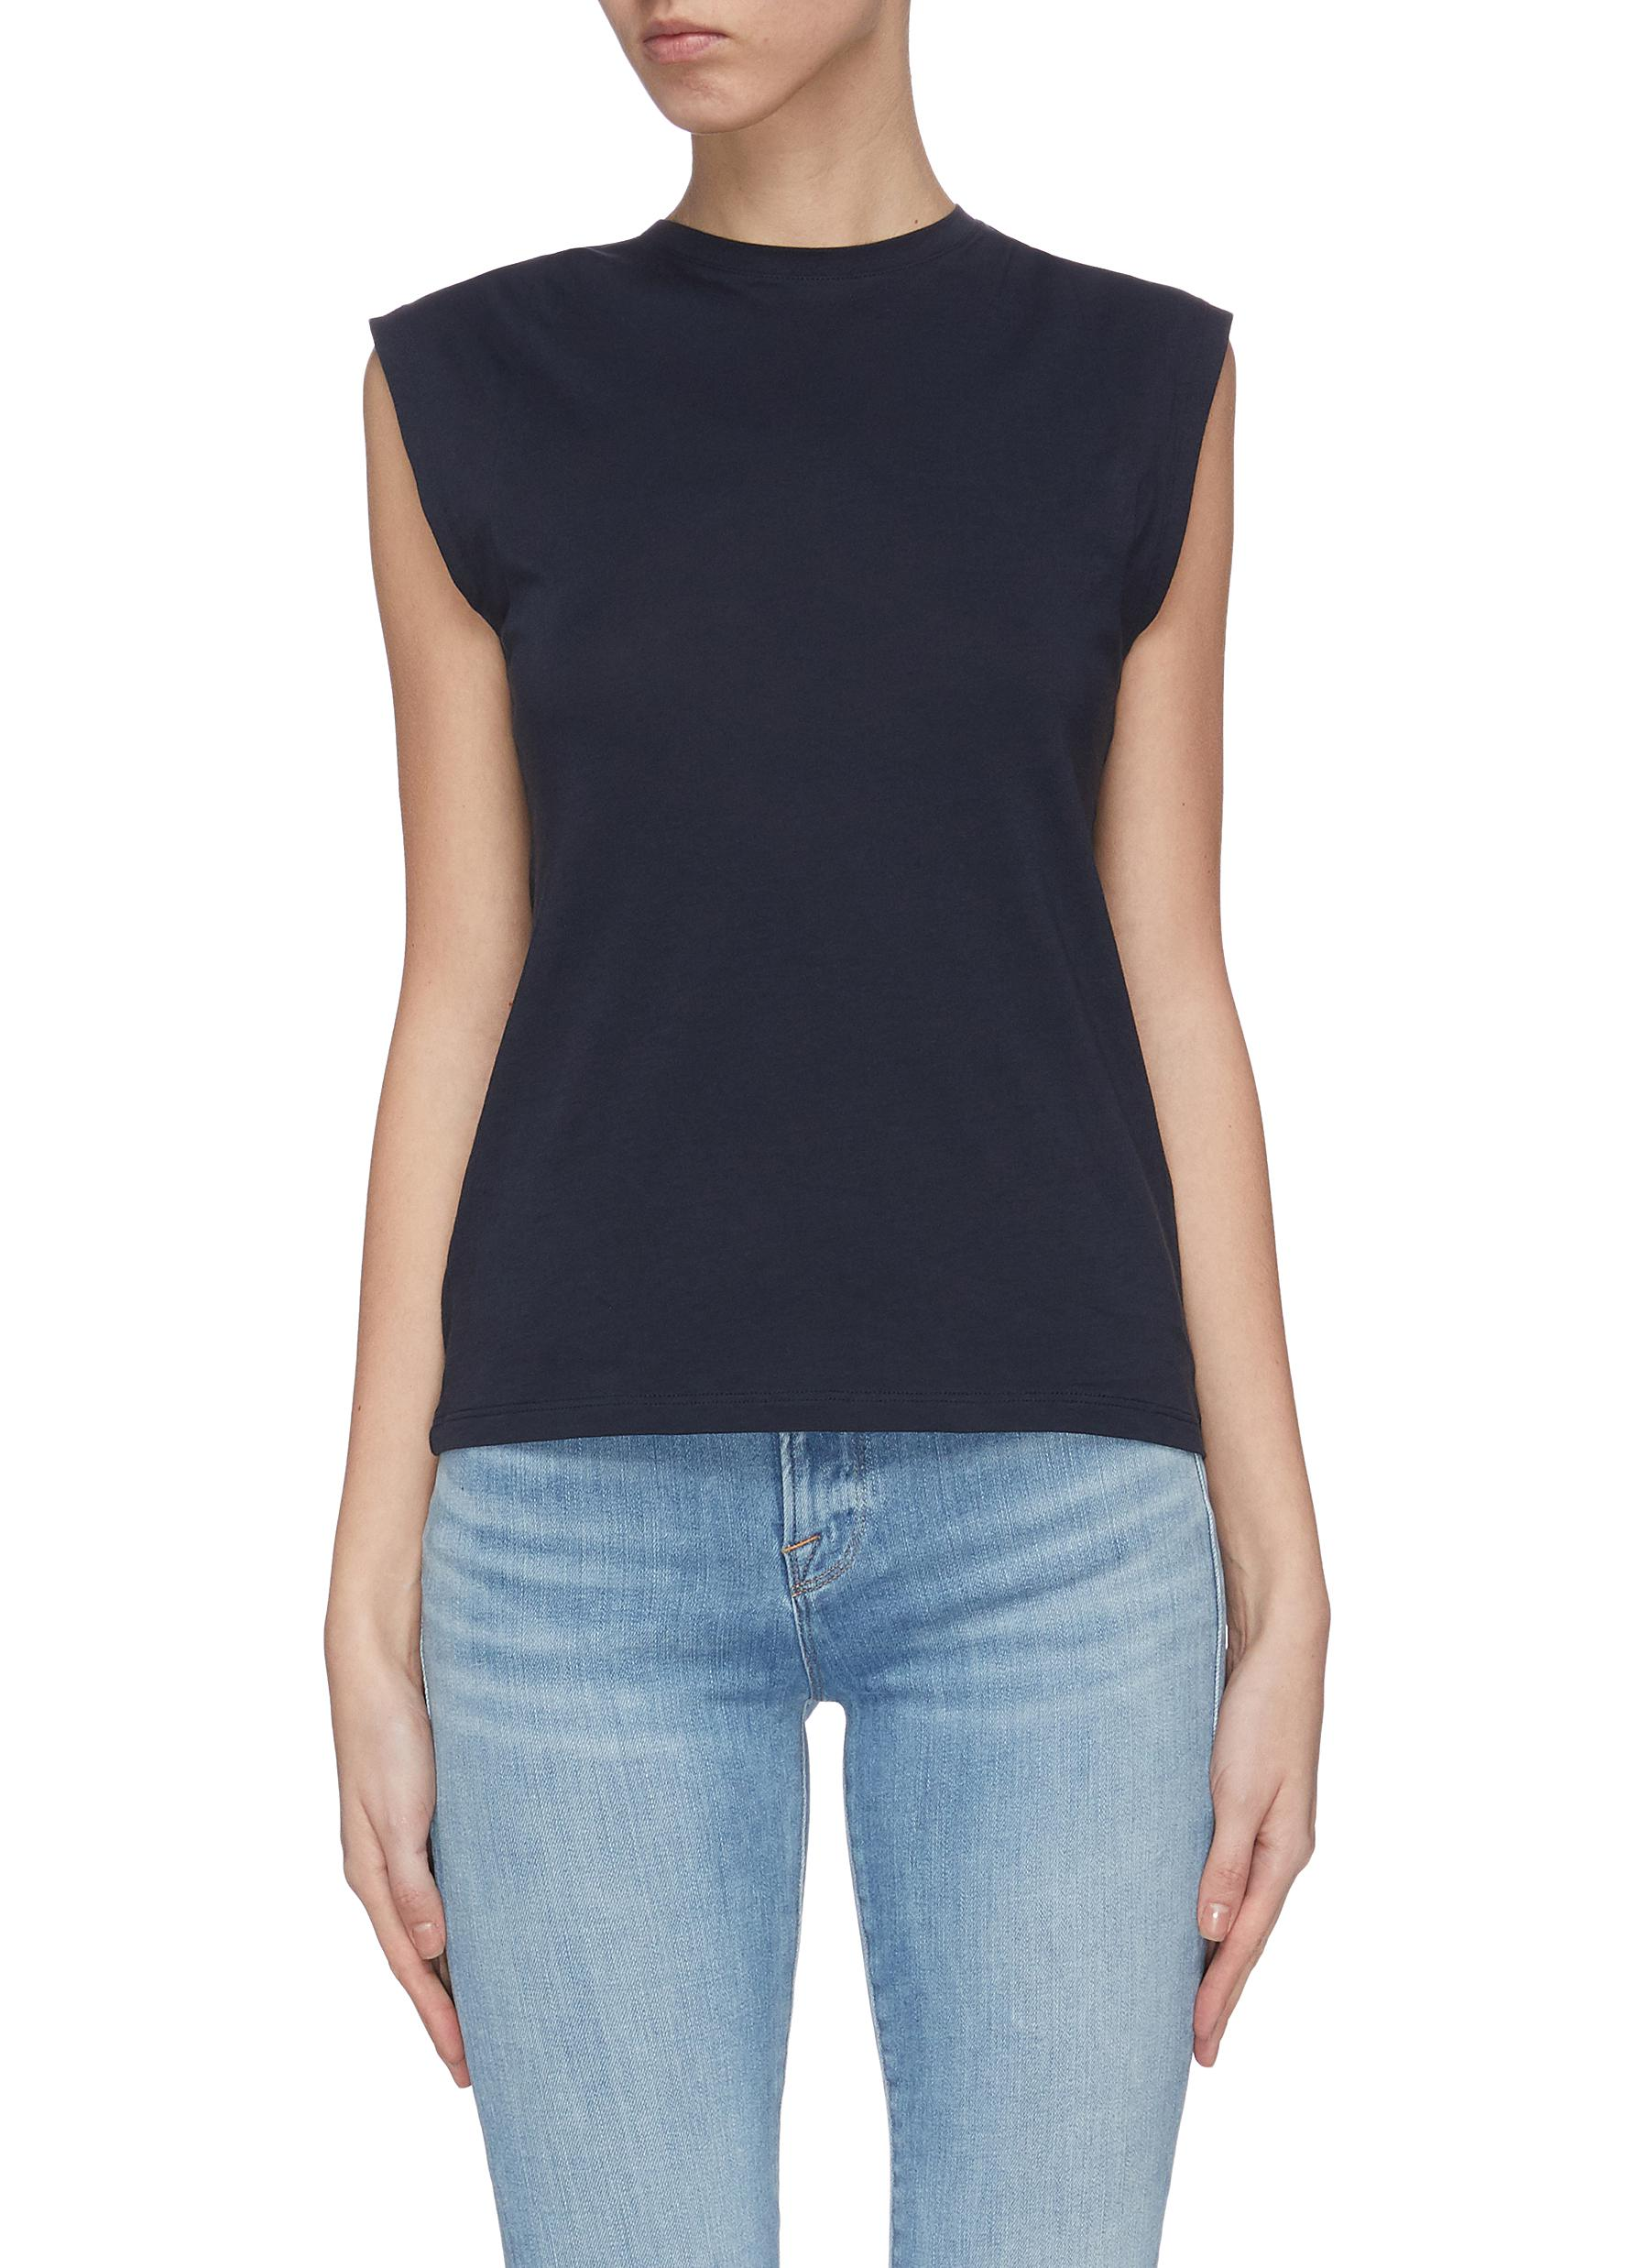 Buy Frame Denim Tops 'Le Mid Rise' muscle T-shirt